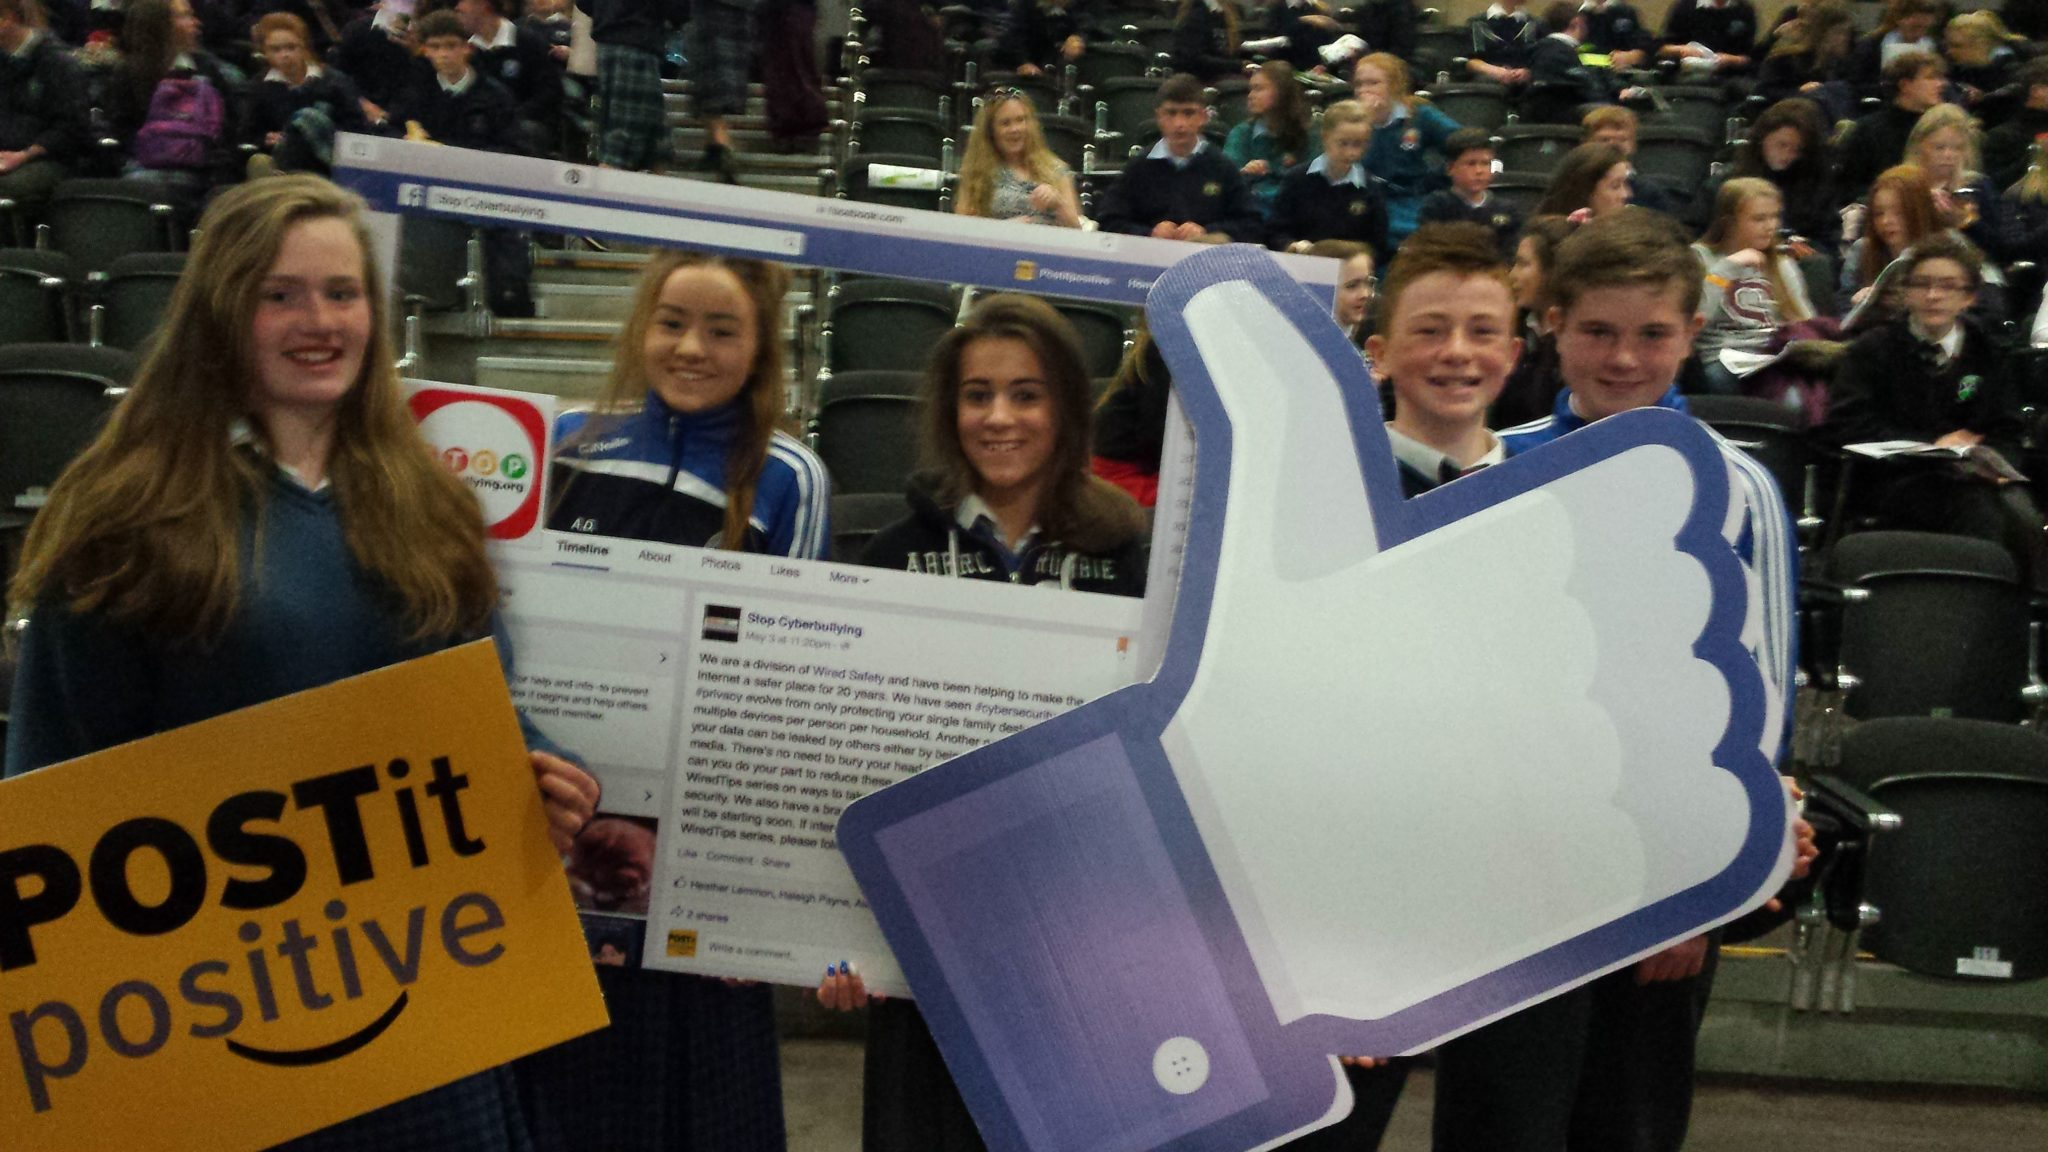 The Global Stop CyberBullying Youth Summit 2015 : Breda Magner, Alice Duffy, Rhea Crowley, Jack Corkery and Danny Moriarty